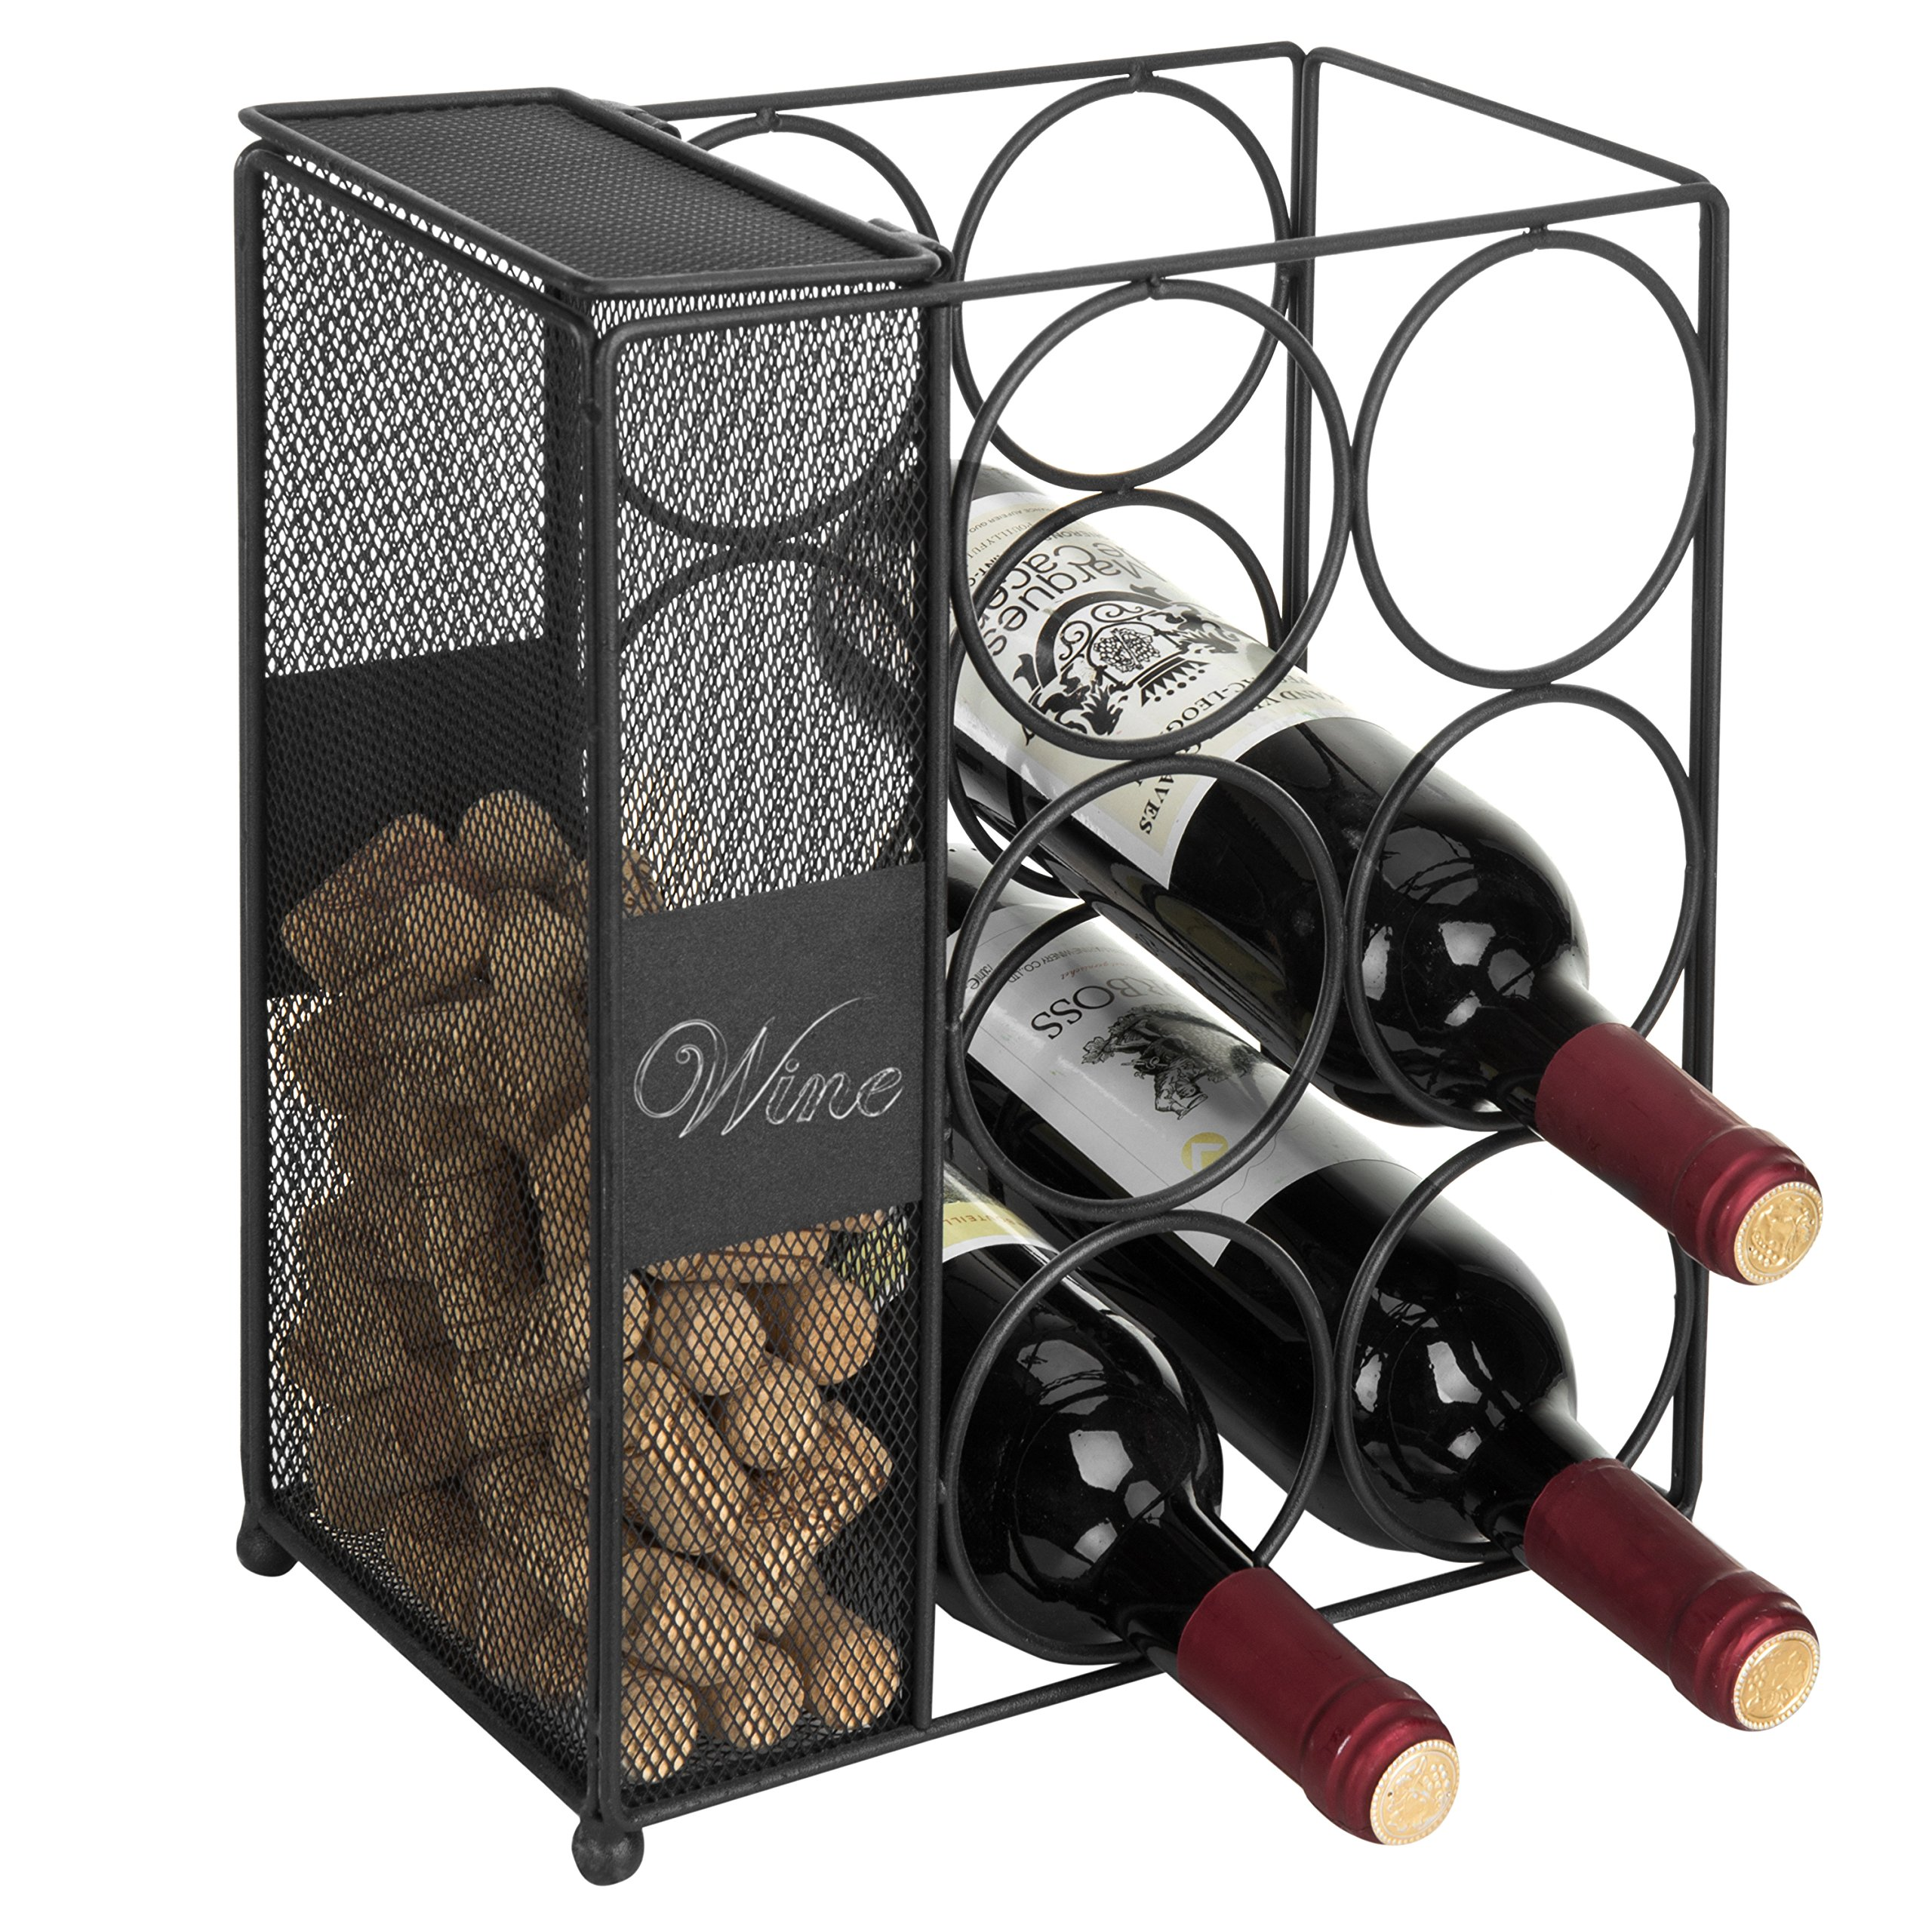 MyGift 6-Bottle Black Wire Wine Rack with Mesh Cork Basket & Chalkboard Labels by MyGift